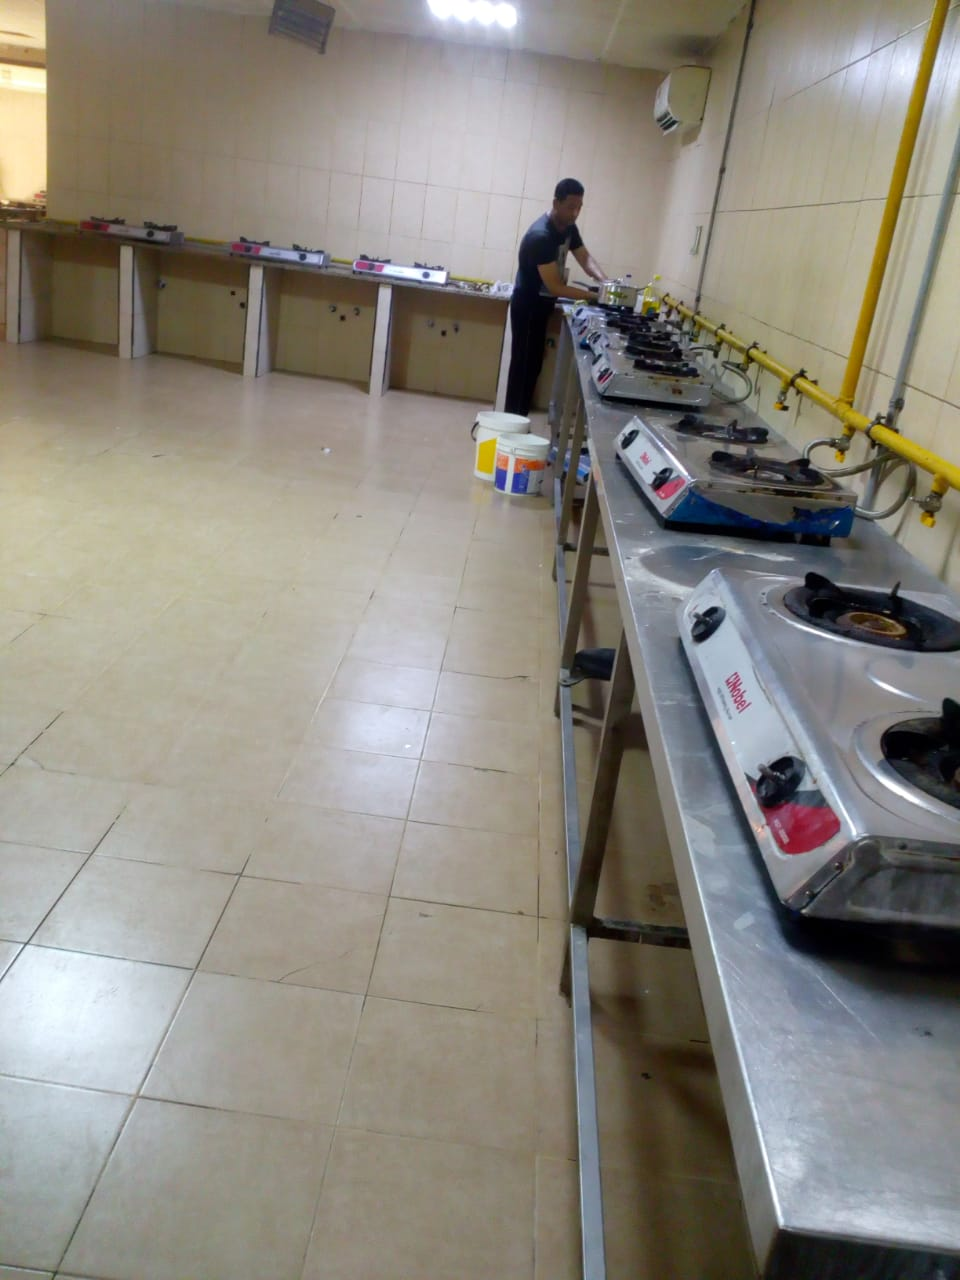 Labour Camp for Rent in Jebel Ali Price: 275/ person +971563222319  Brand new Labour Camp for rent. Building is G+3 located in Jebel Ali  Location: Jebel Ali Industrial Area 1 Total Room: 106 Rooms Total capacity : 800 persons Pricce: 275/ person  Mobile + Whatsapp: +971563222319 Email: bilaldxb34@gmail.com Agents please excuse  We offers full additional real estate services including residential, commercial, investment opportunities, sales and re-sales of properties.